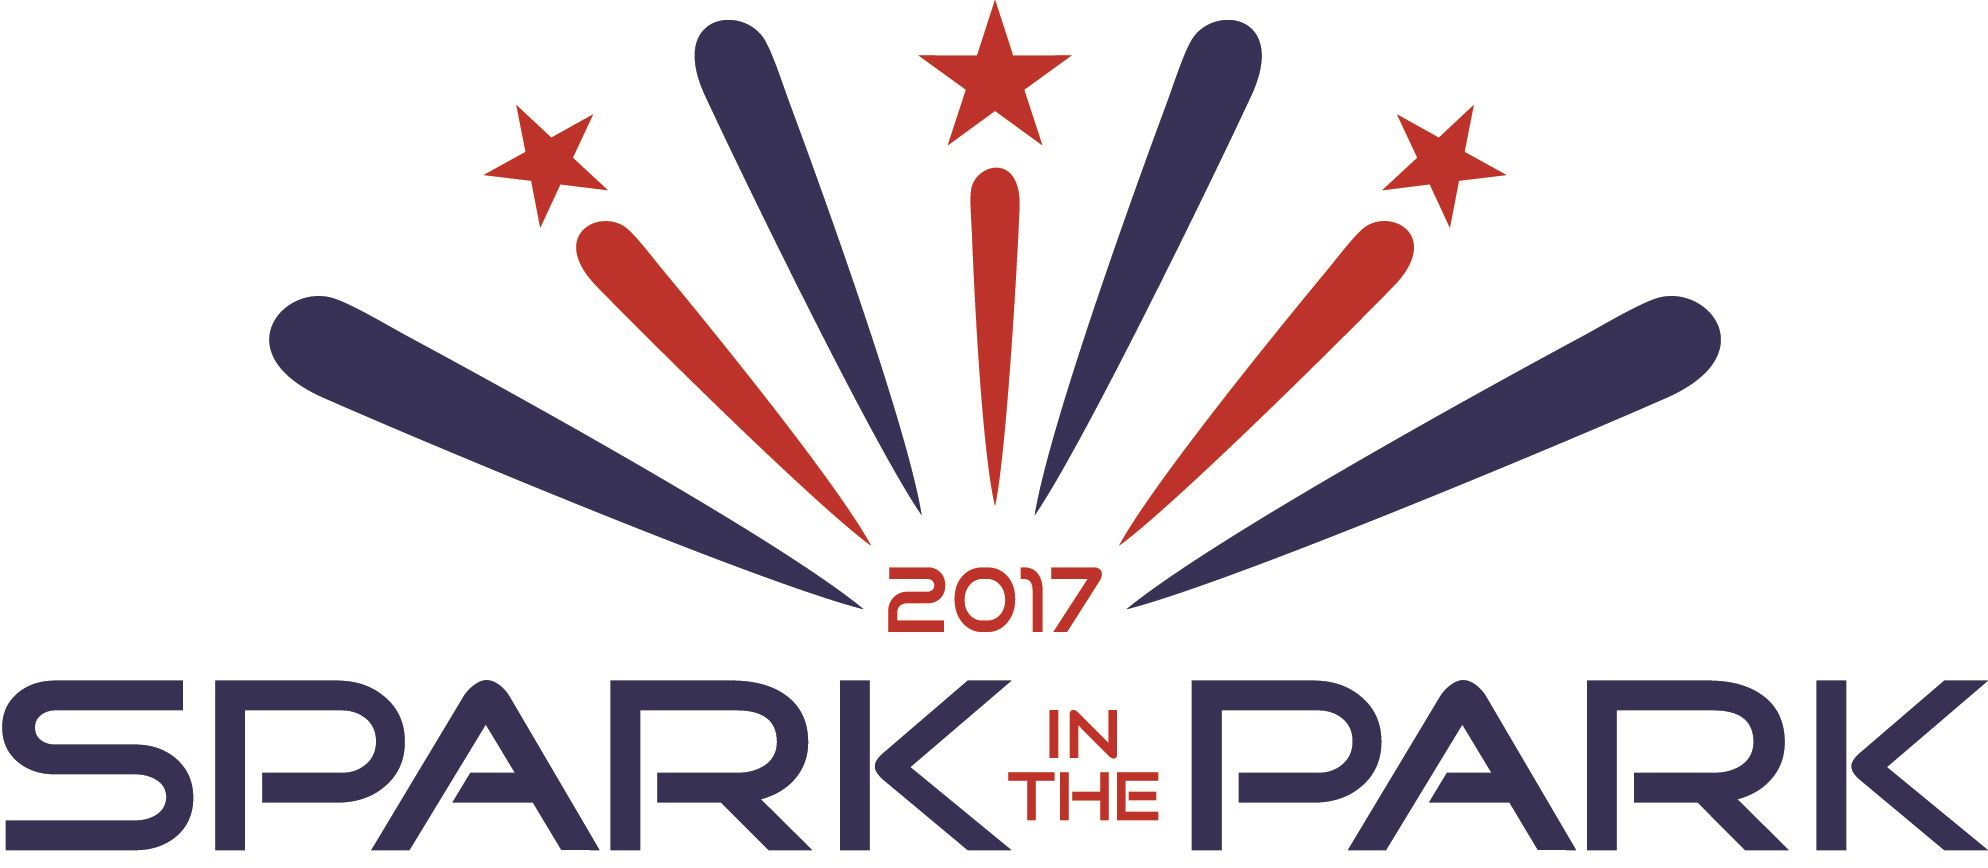 Spark in the Park Logo - 2017 NO SPONSOR